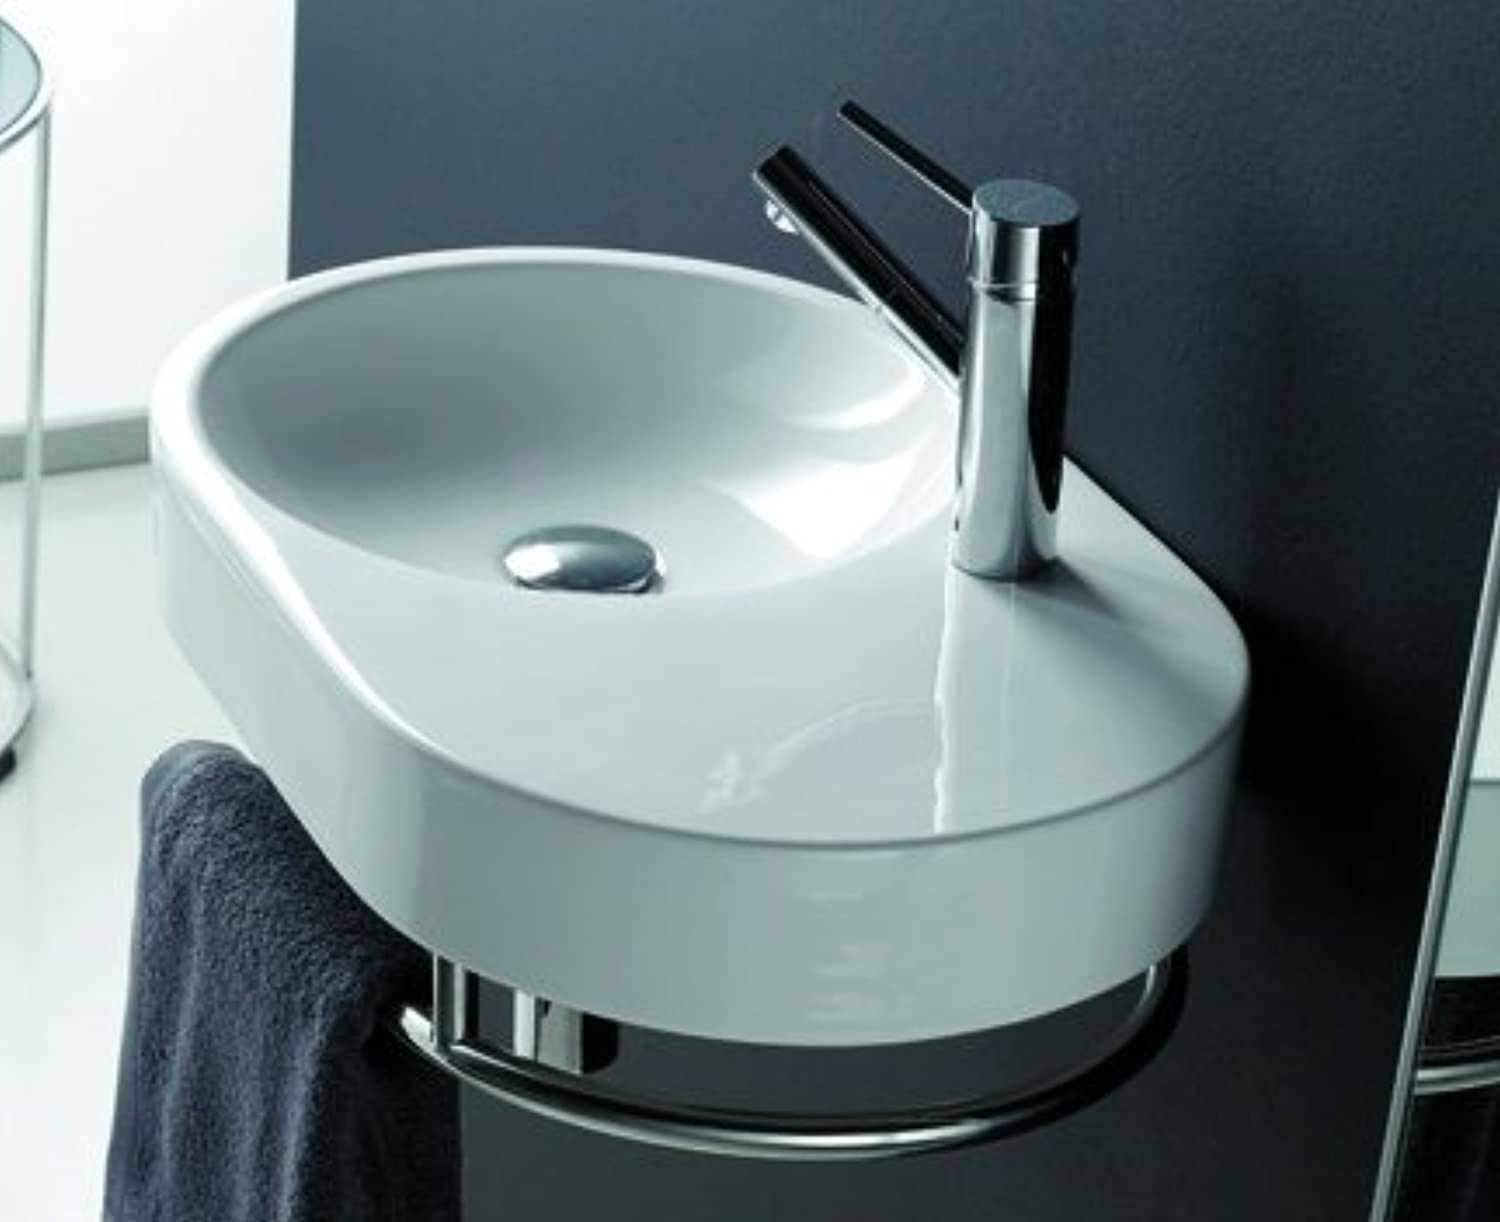 The Bath Collection - Semi-Oval Sink Fuengirola 600 x 380 x 900 mm